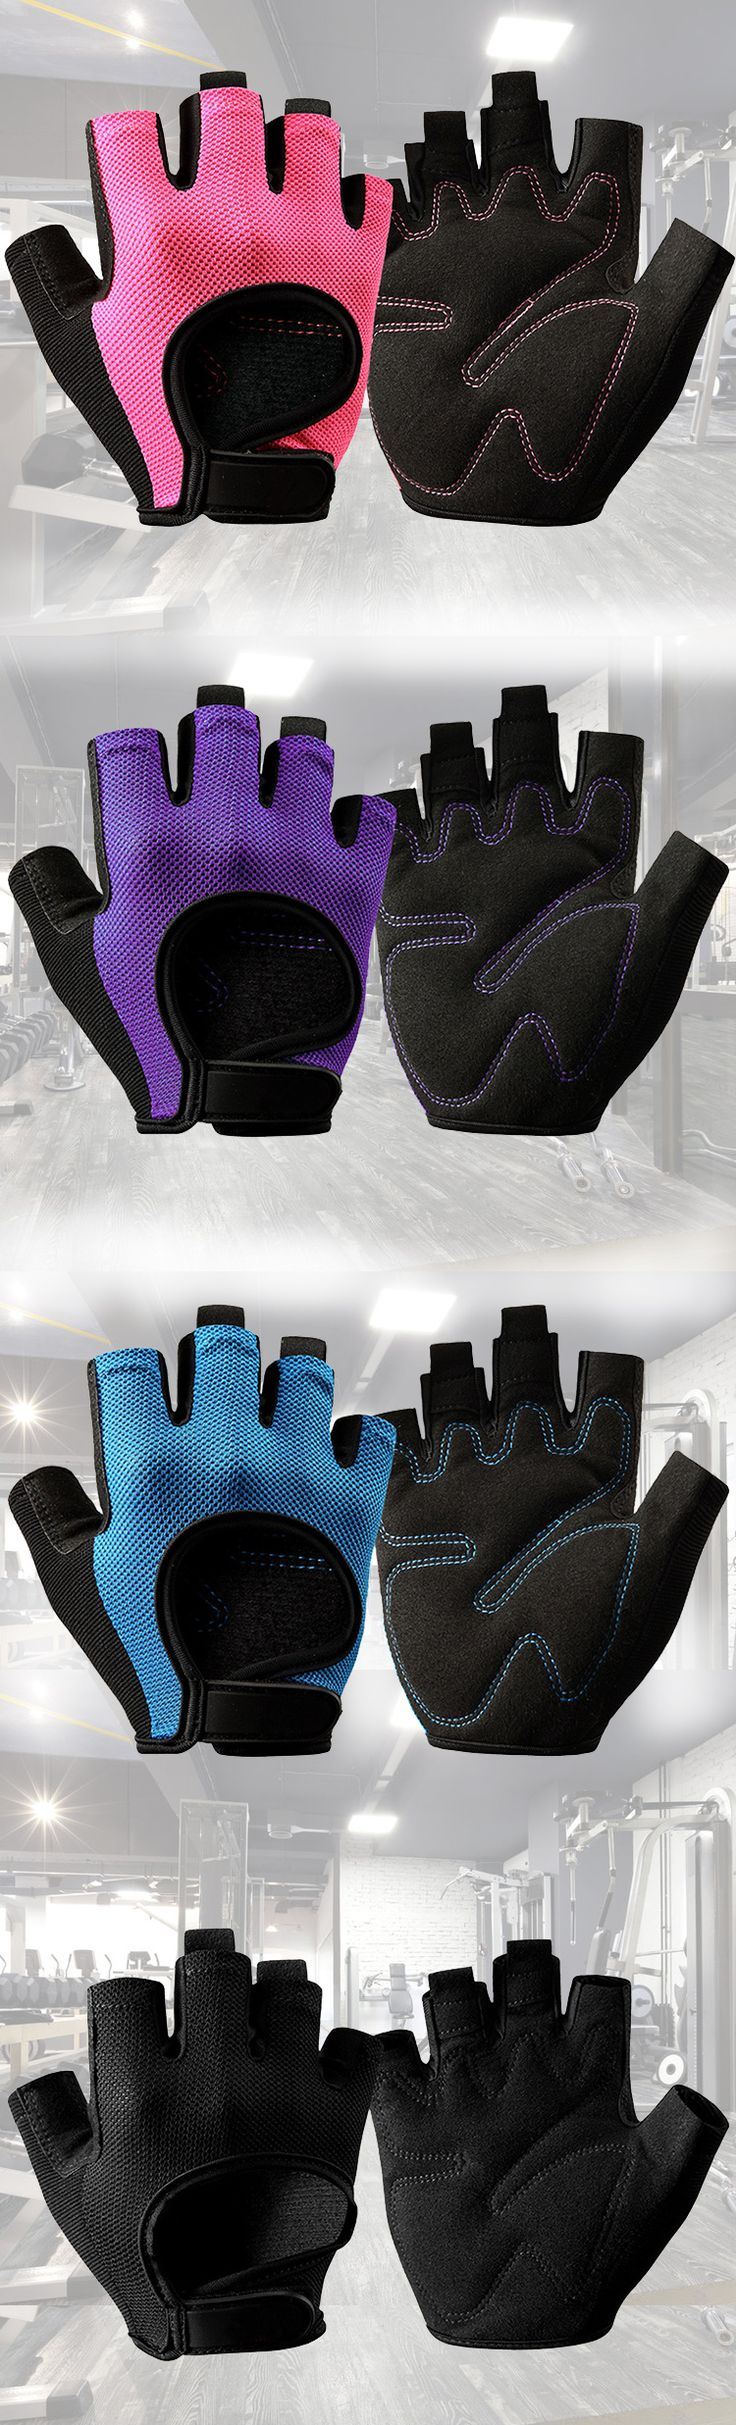 Gym gloves, quality anti-skid Pilates &Yoga gloves for fitness people.